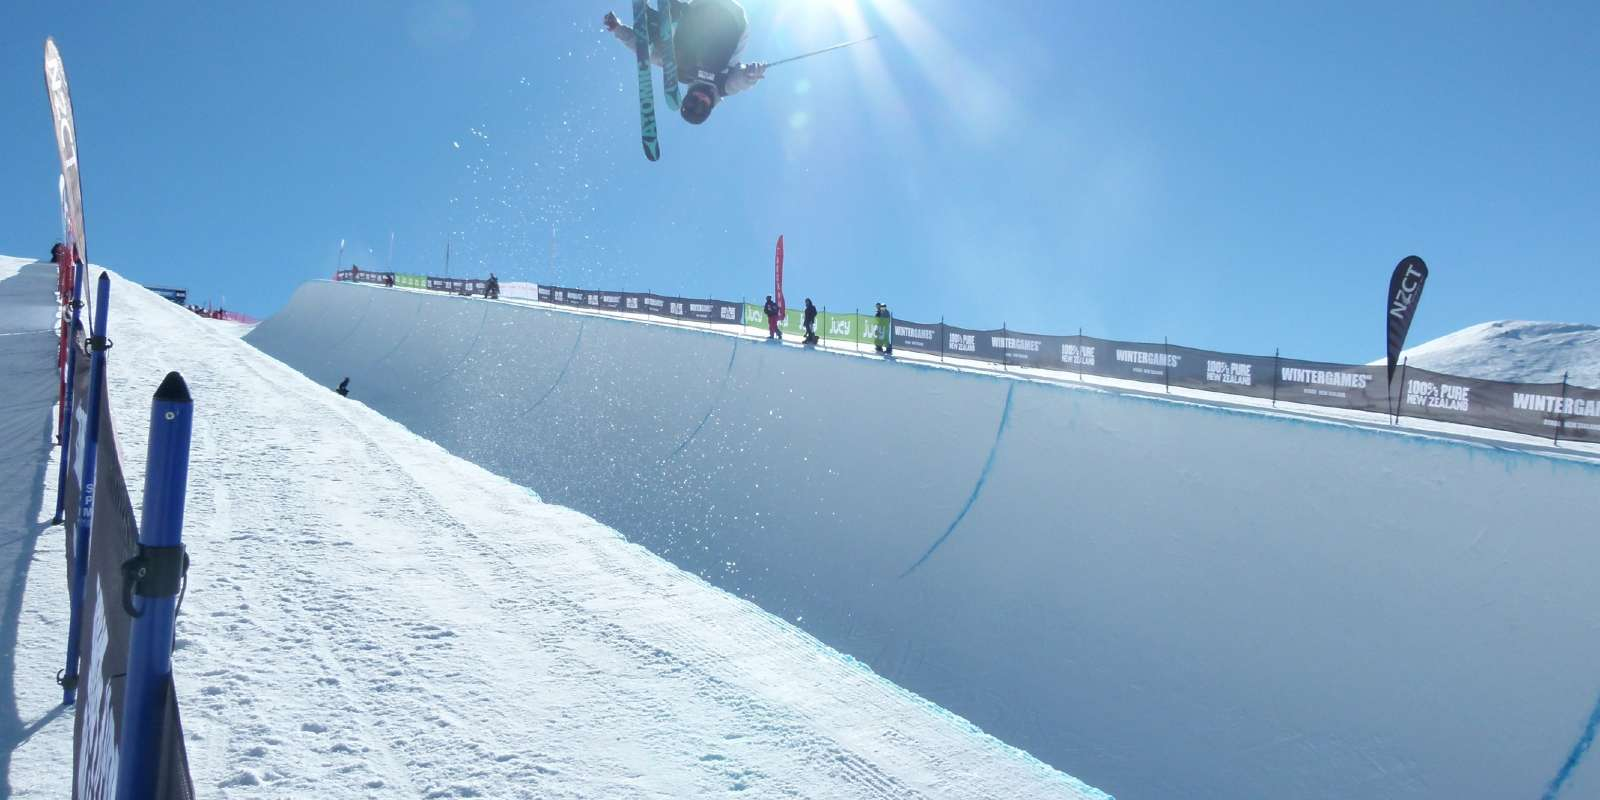 Competitor at the Winter Games at Cardrona